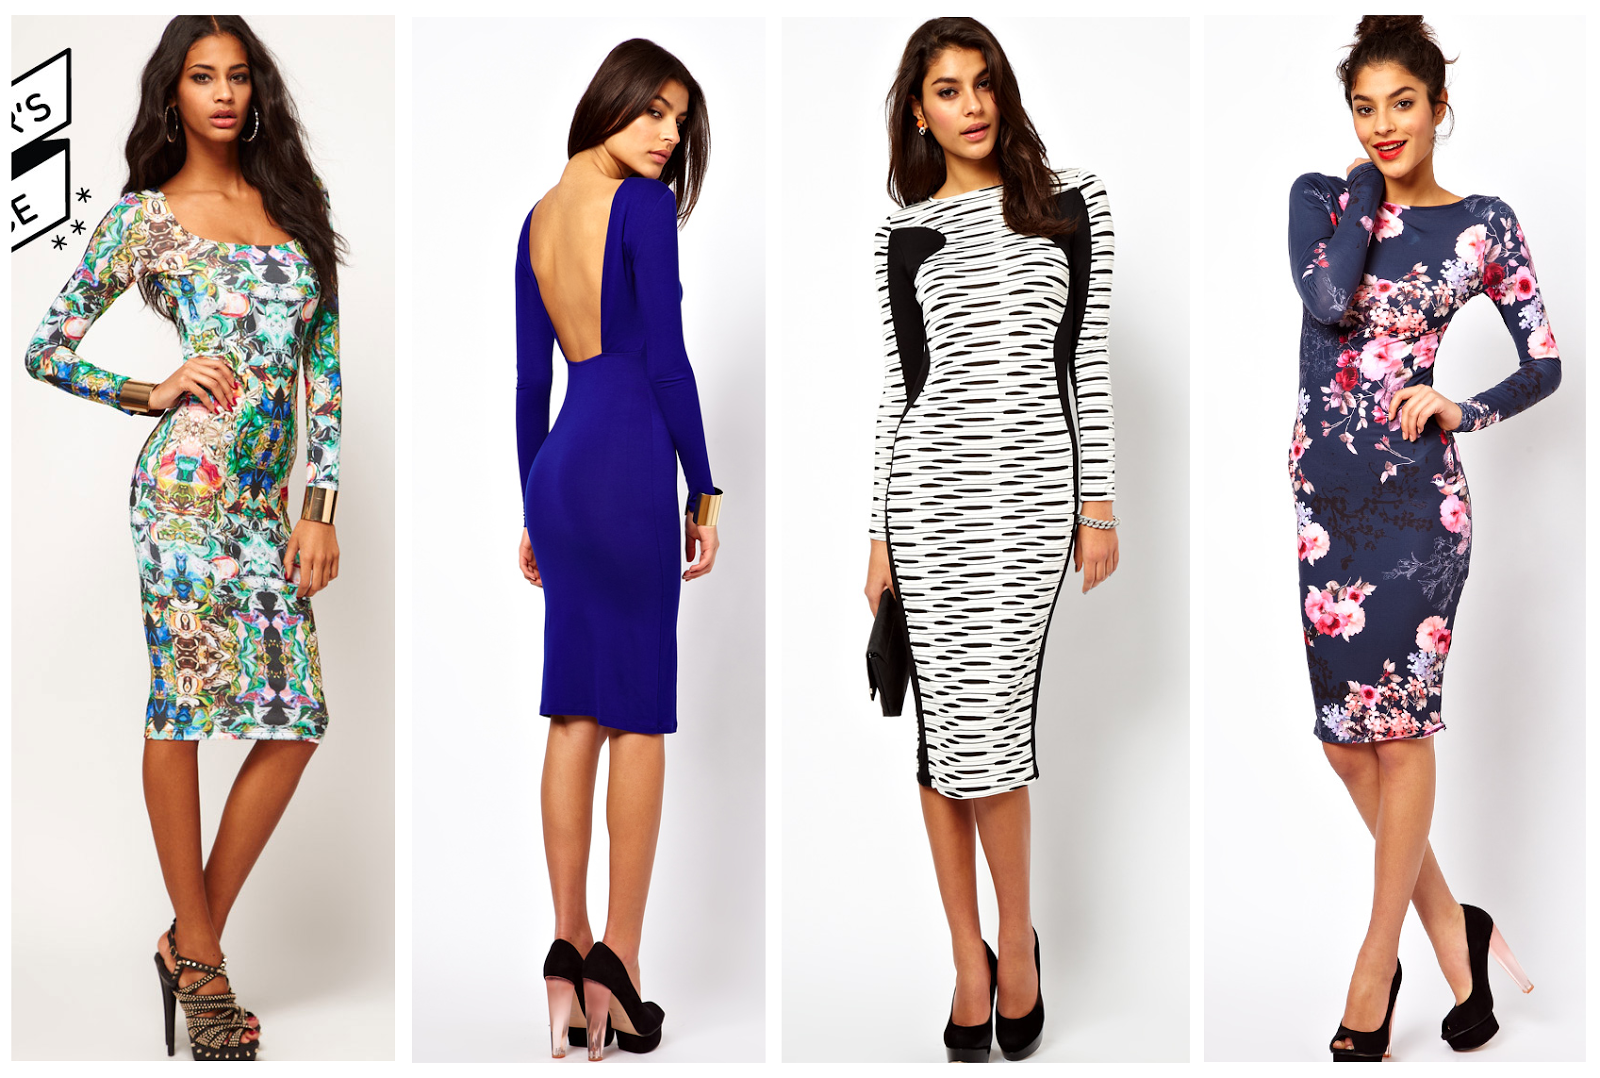 Black And White Women Dresses For Church 10 Desktop ...